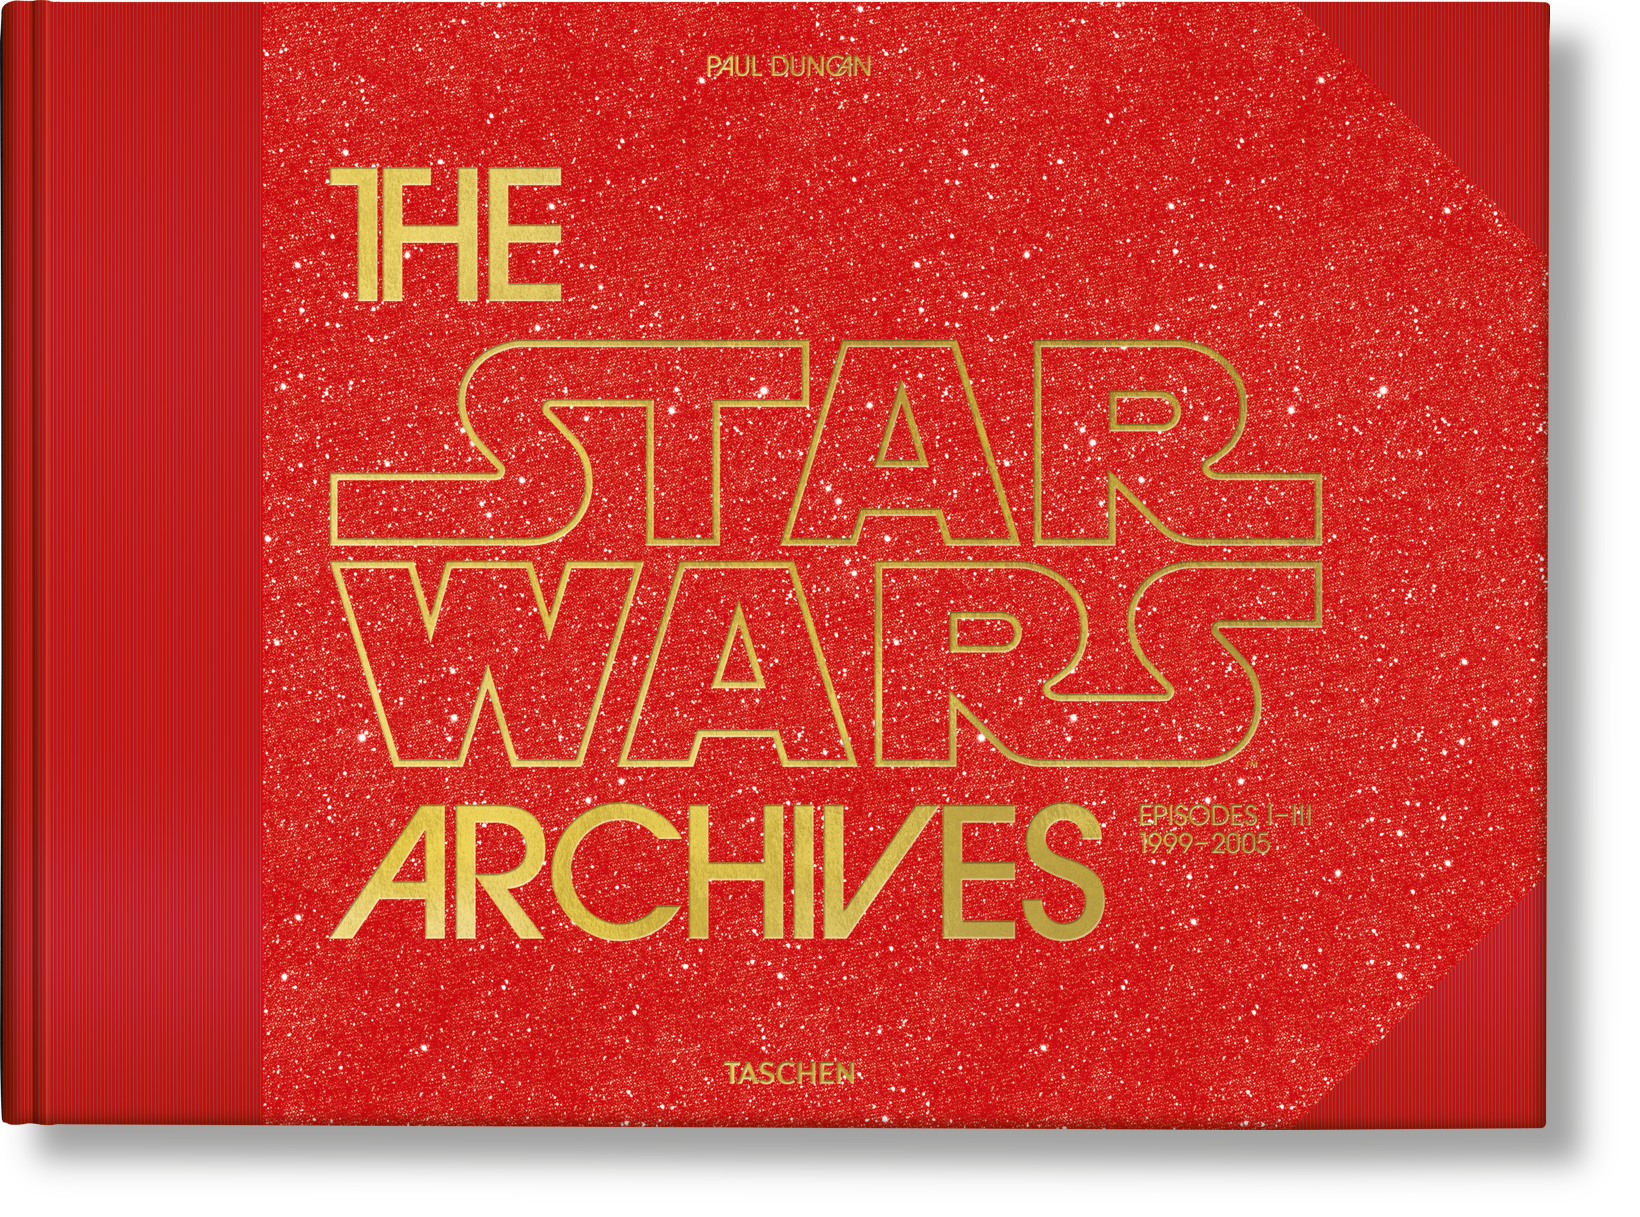 Star Wars Archives I-III cover